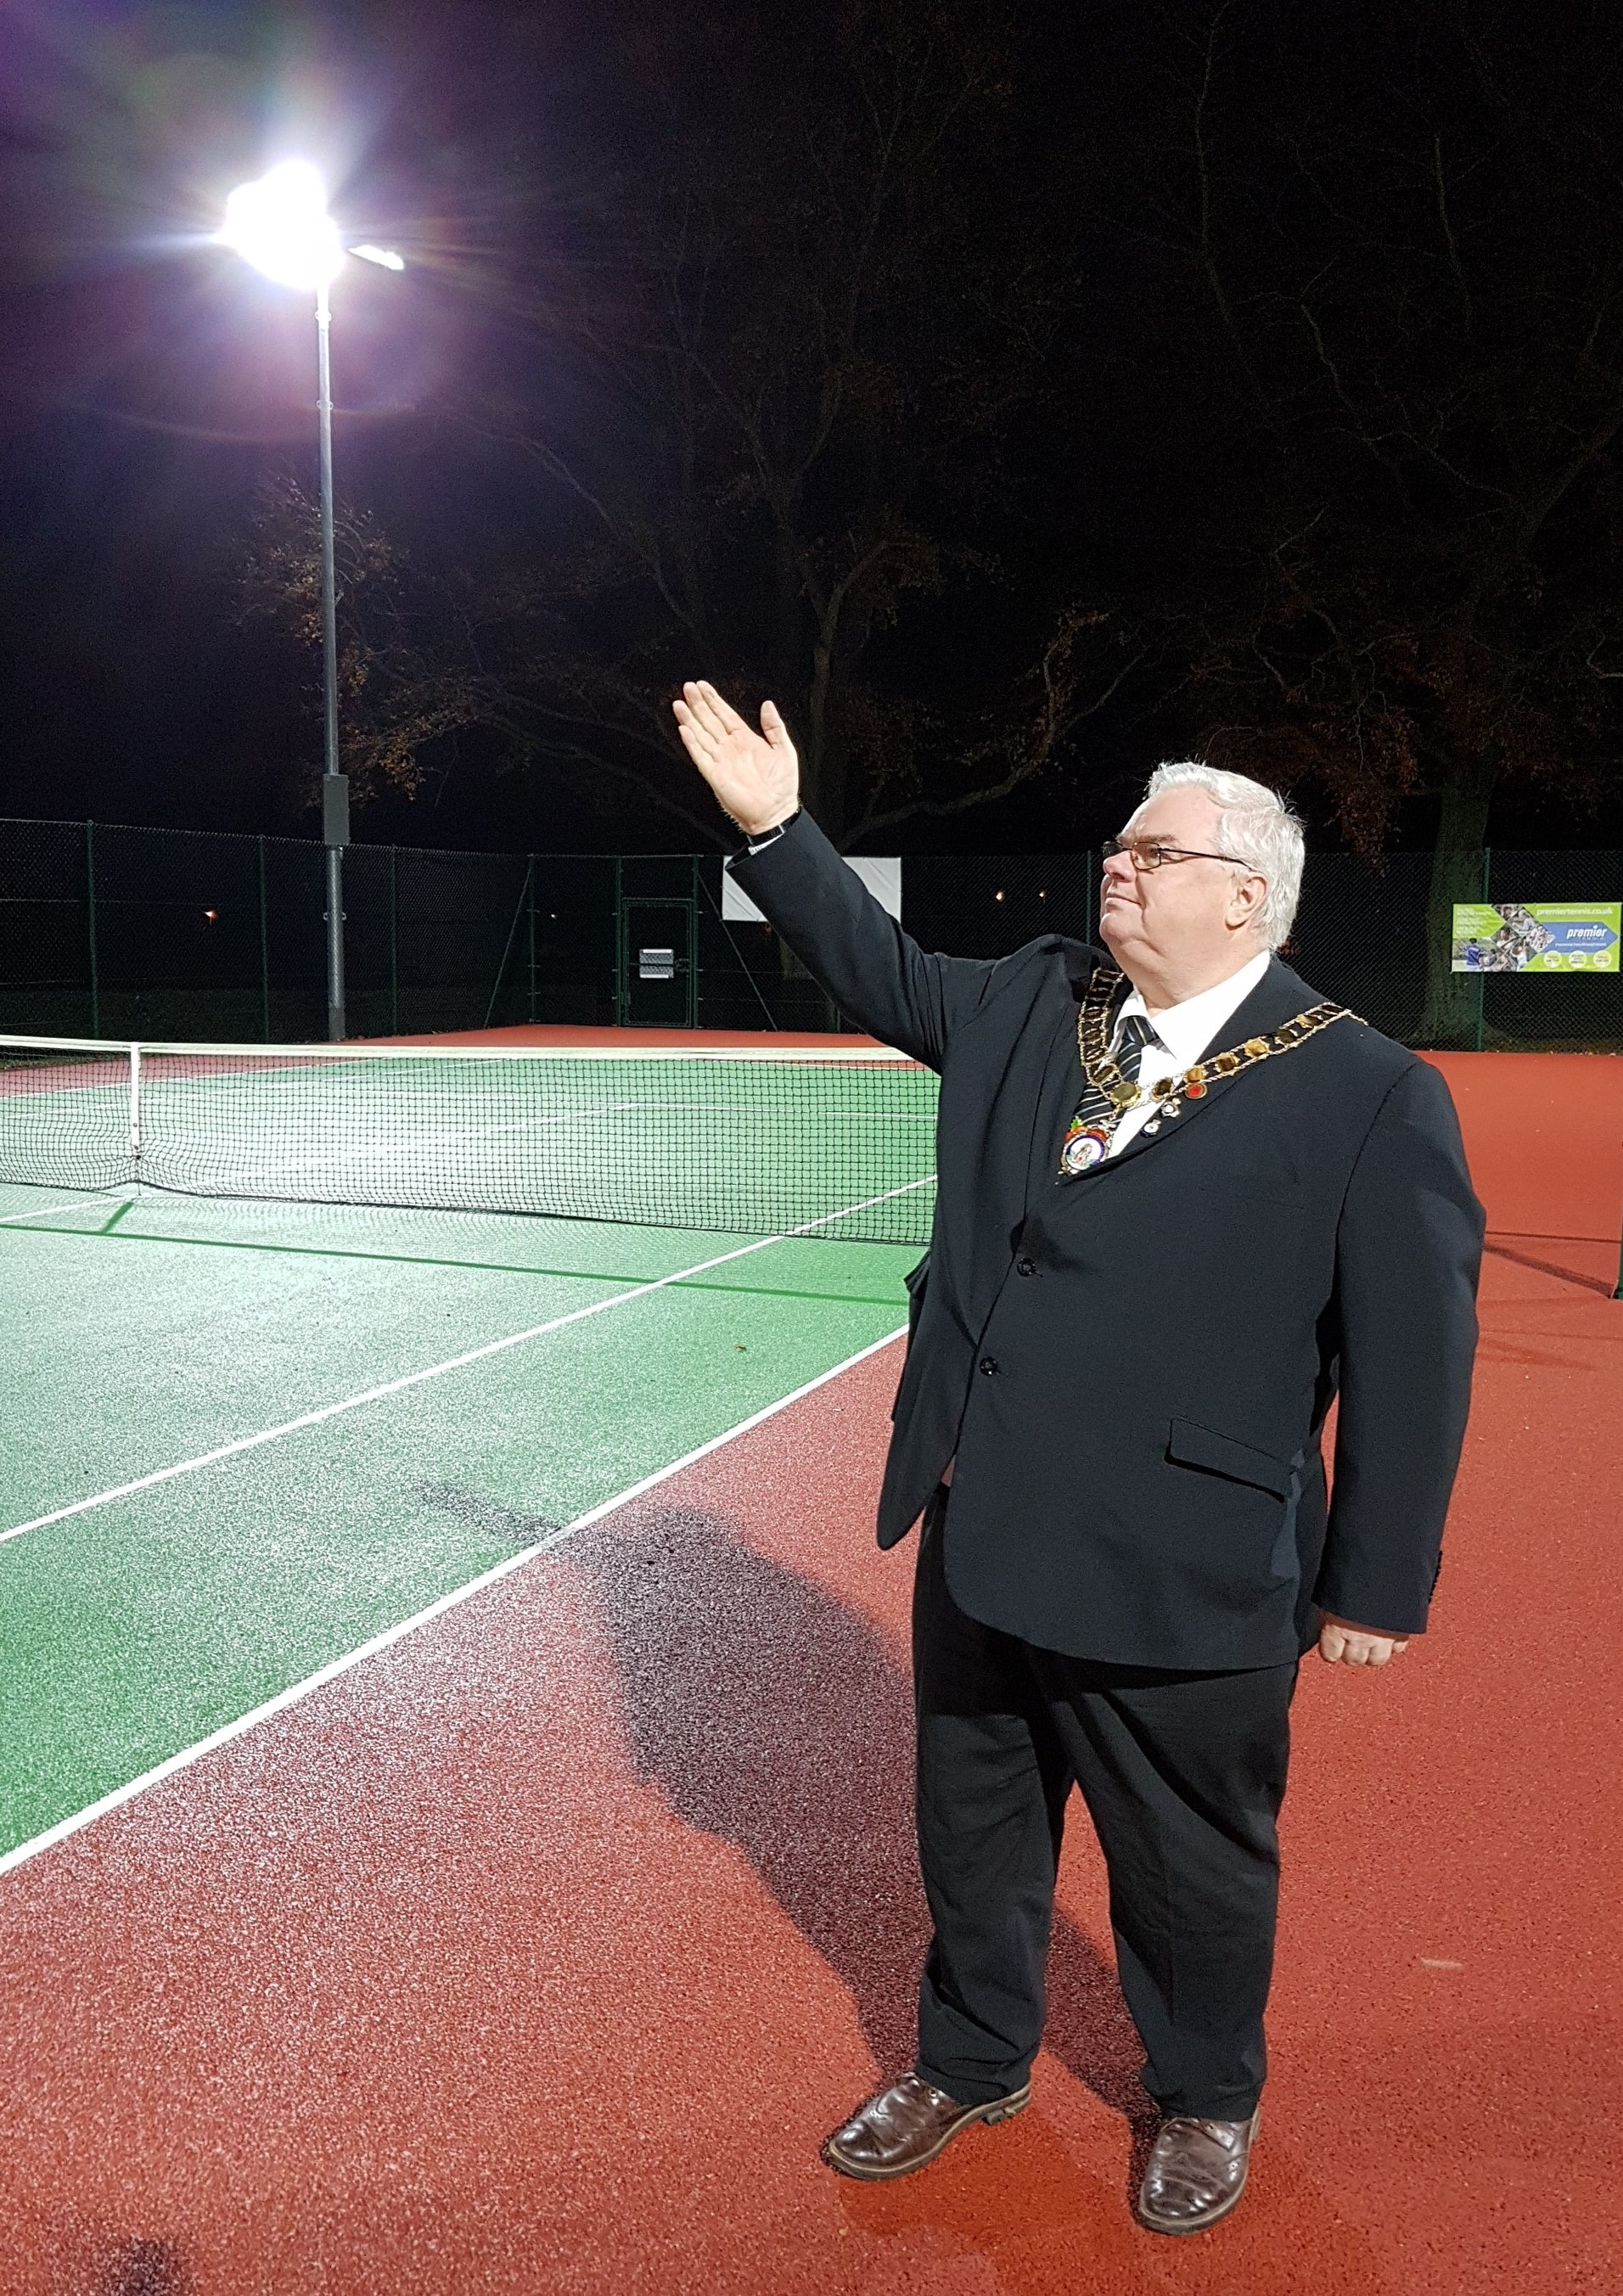 Wantage Mayor Chris McCarthy says 'let there be light' at Wantage Tennis Club. Picture: Mark Rowe